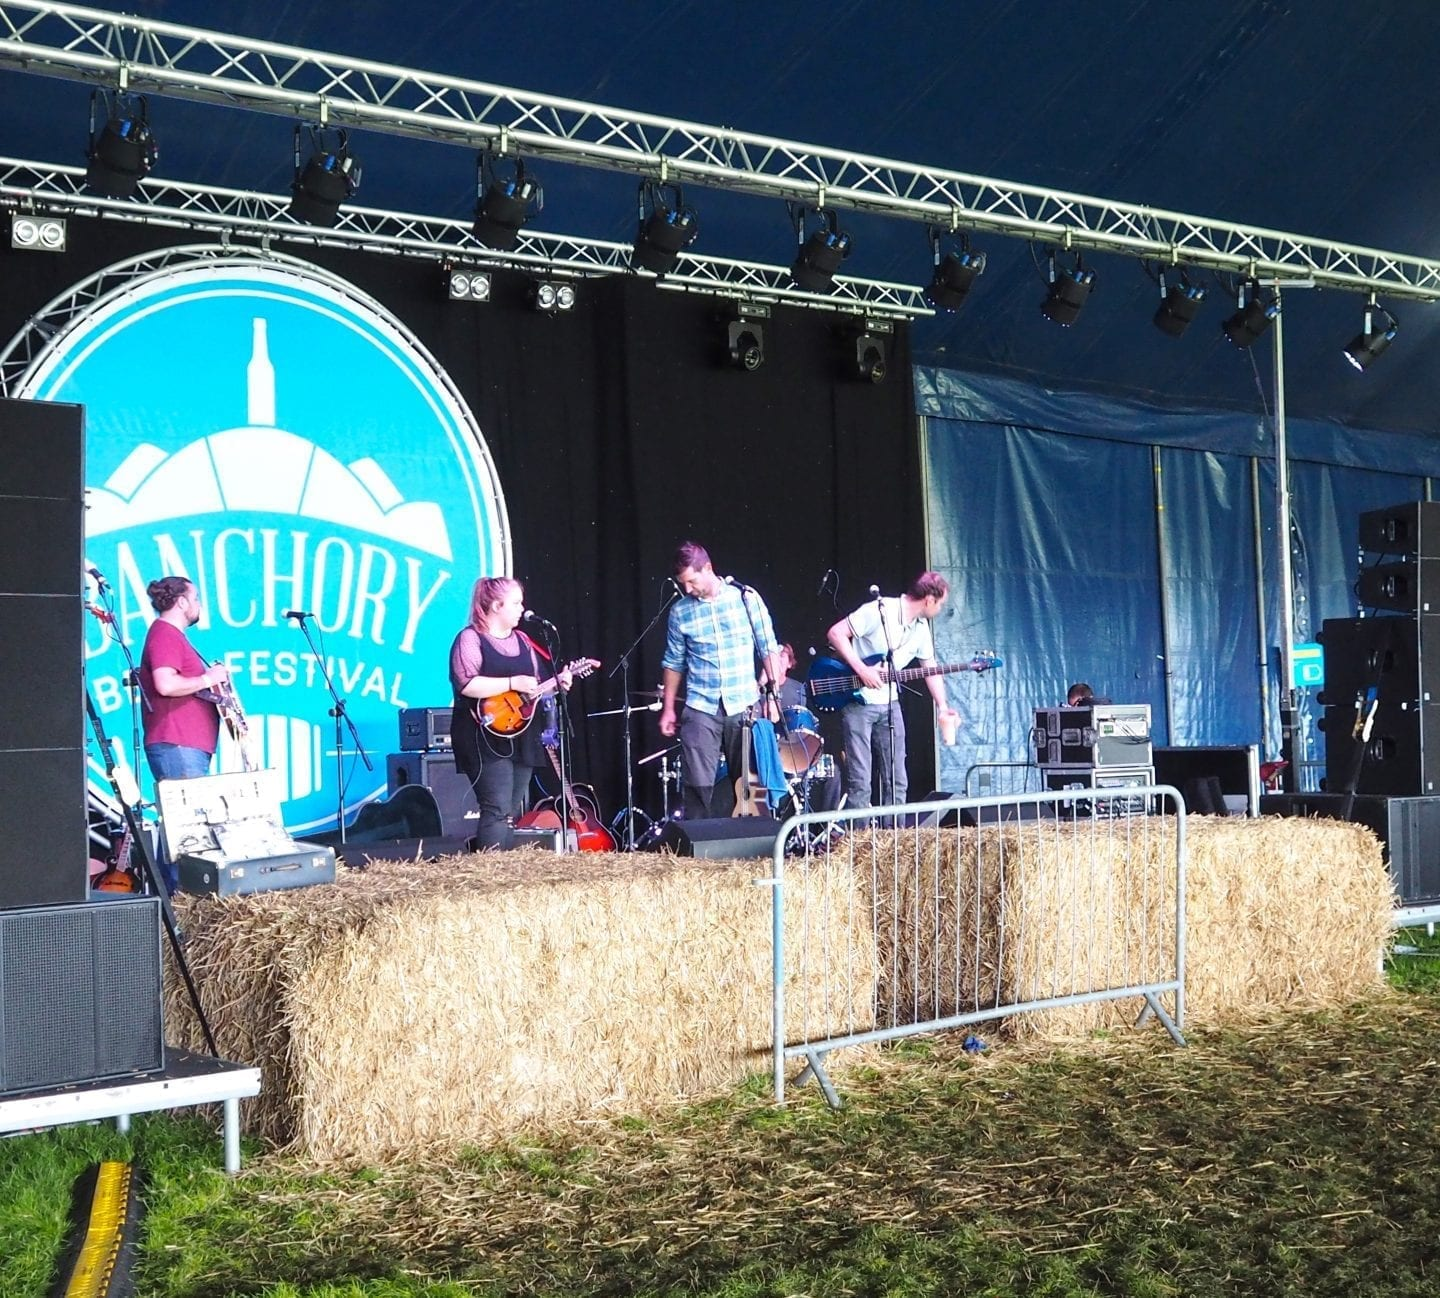 Banchory Beer Festival Review